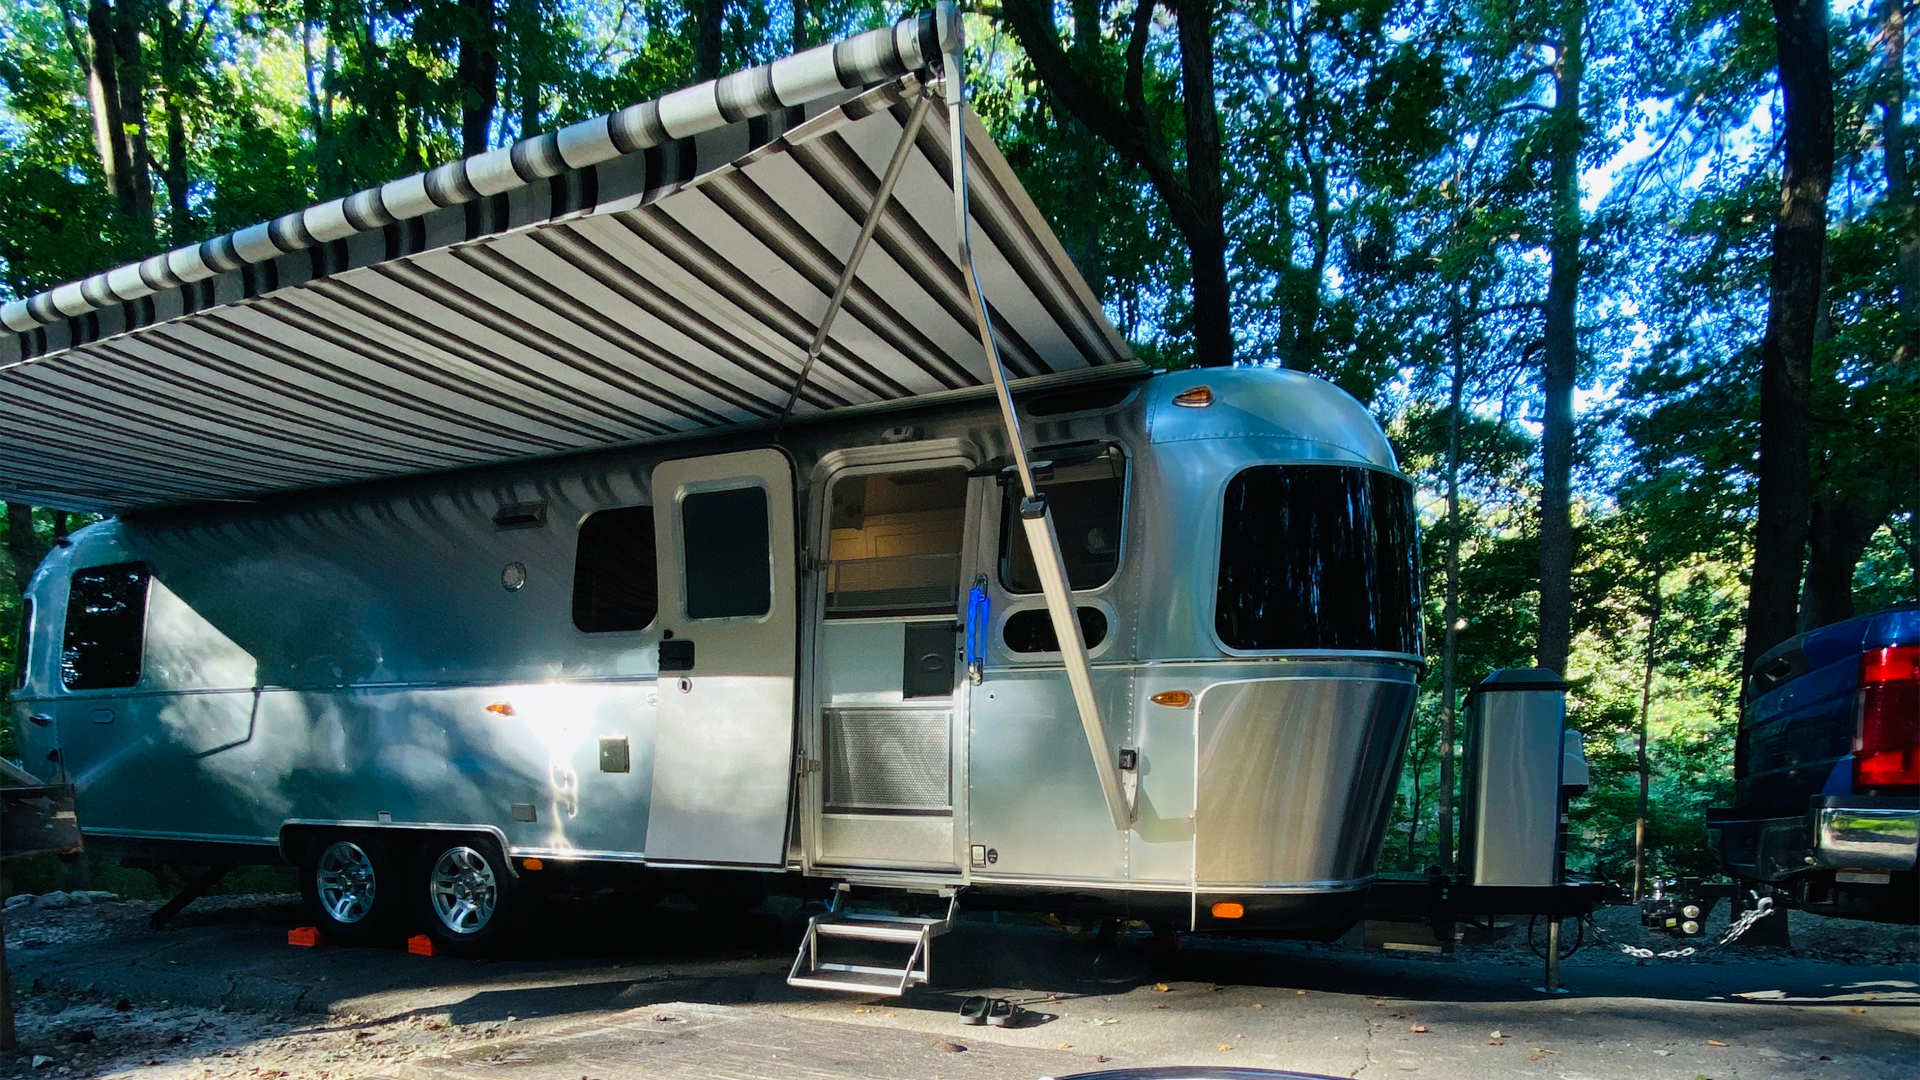 Airstream Classic Trailer at a campground